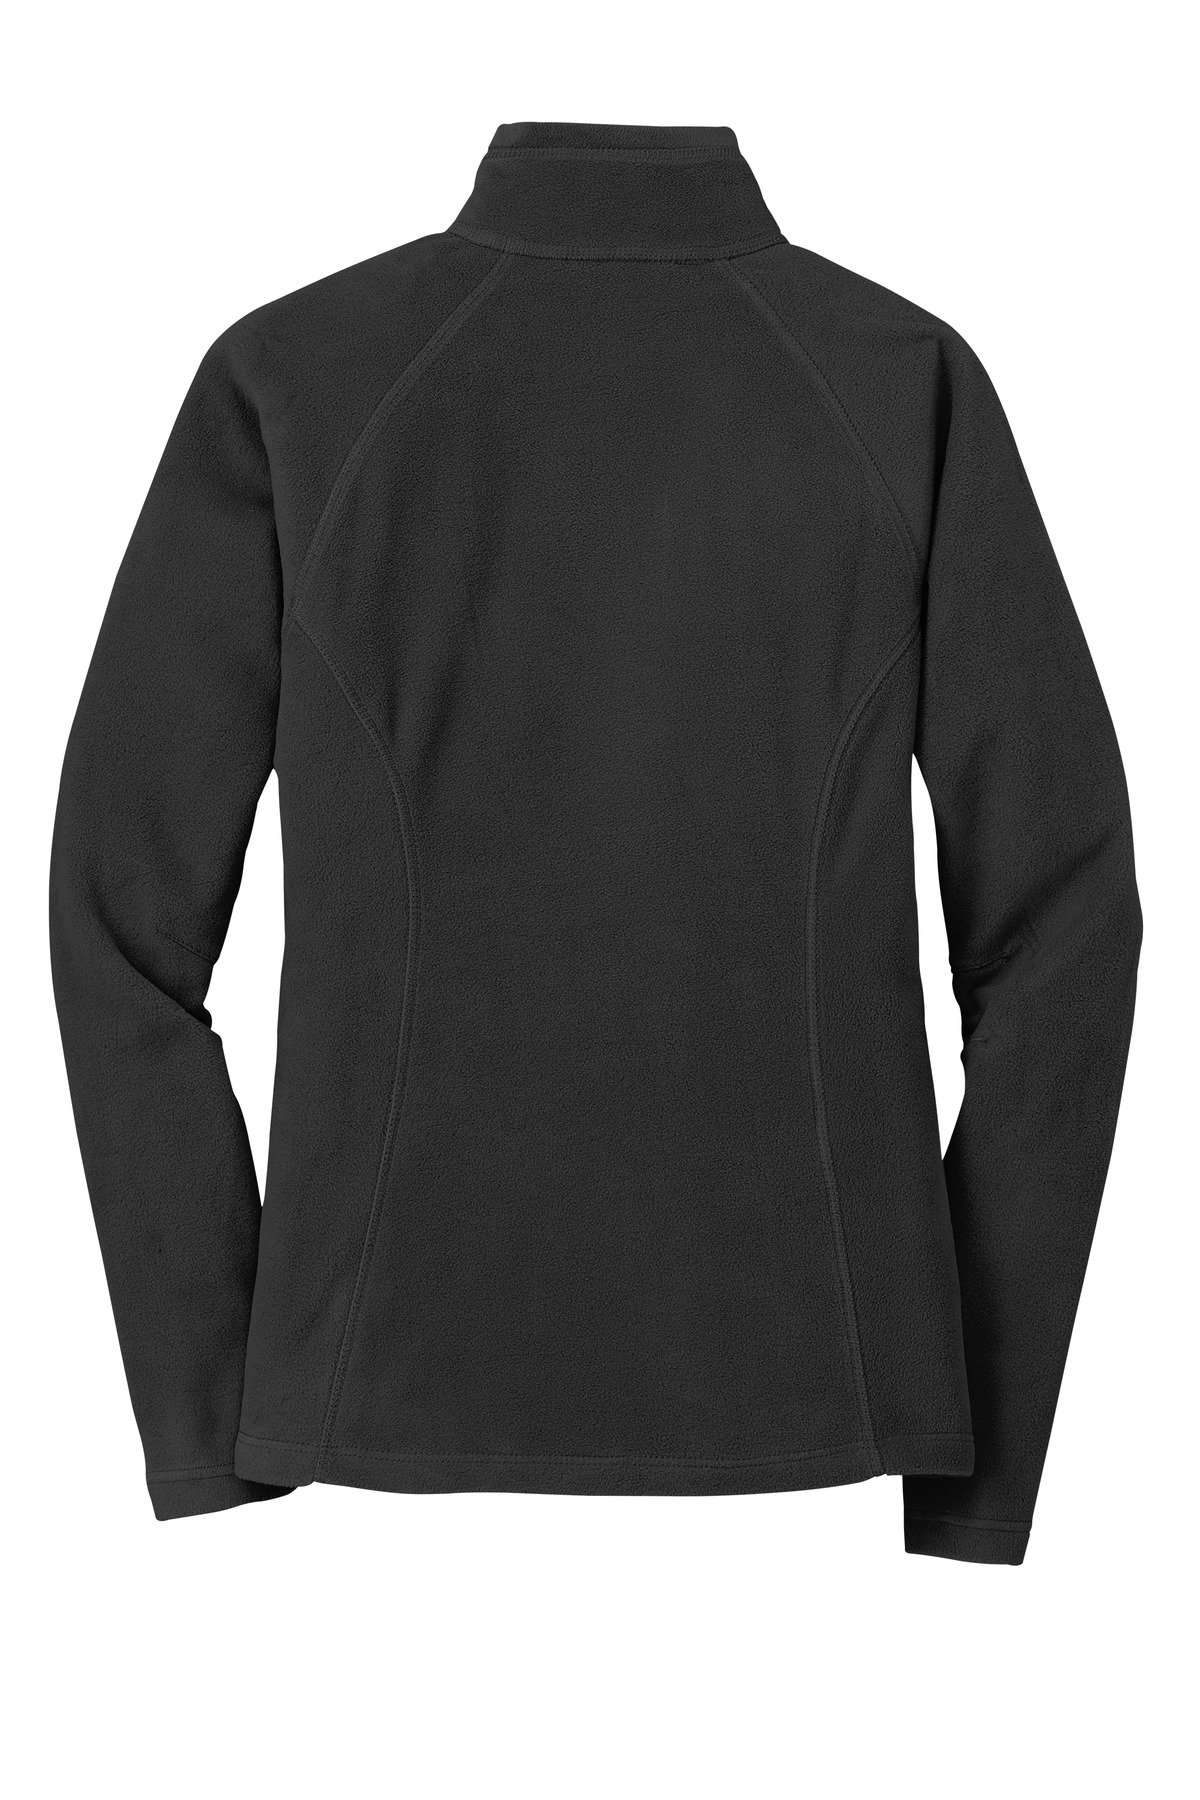 Eddie Bauer Ladies Full-Zip Microfleece Jacket - RCL2380